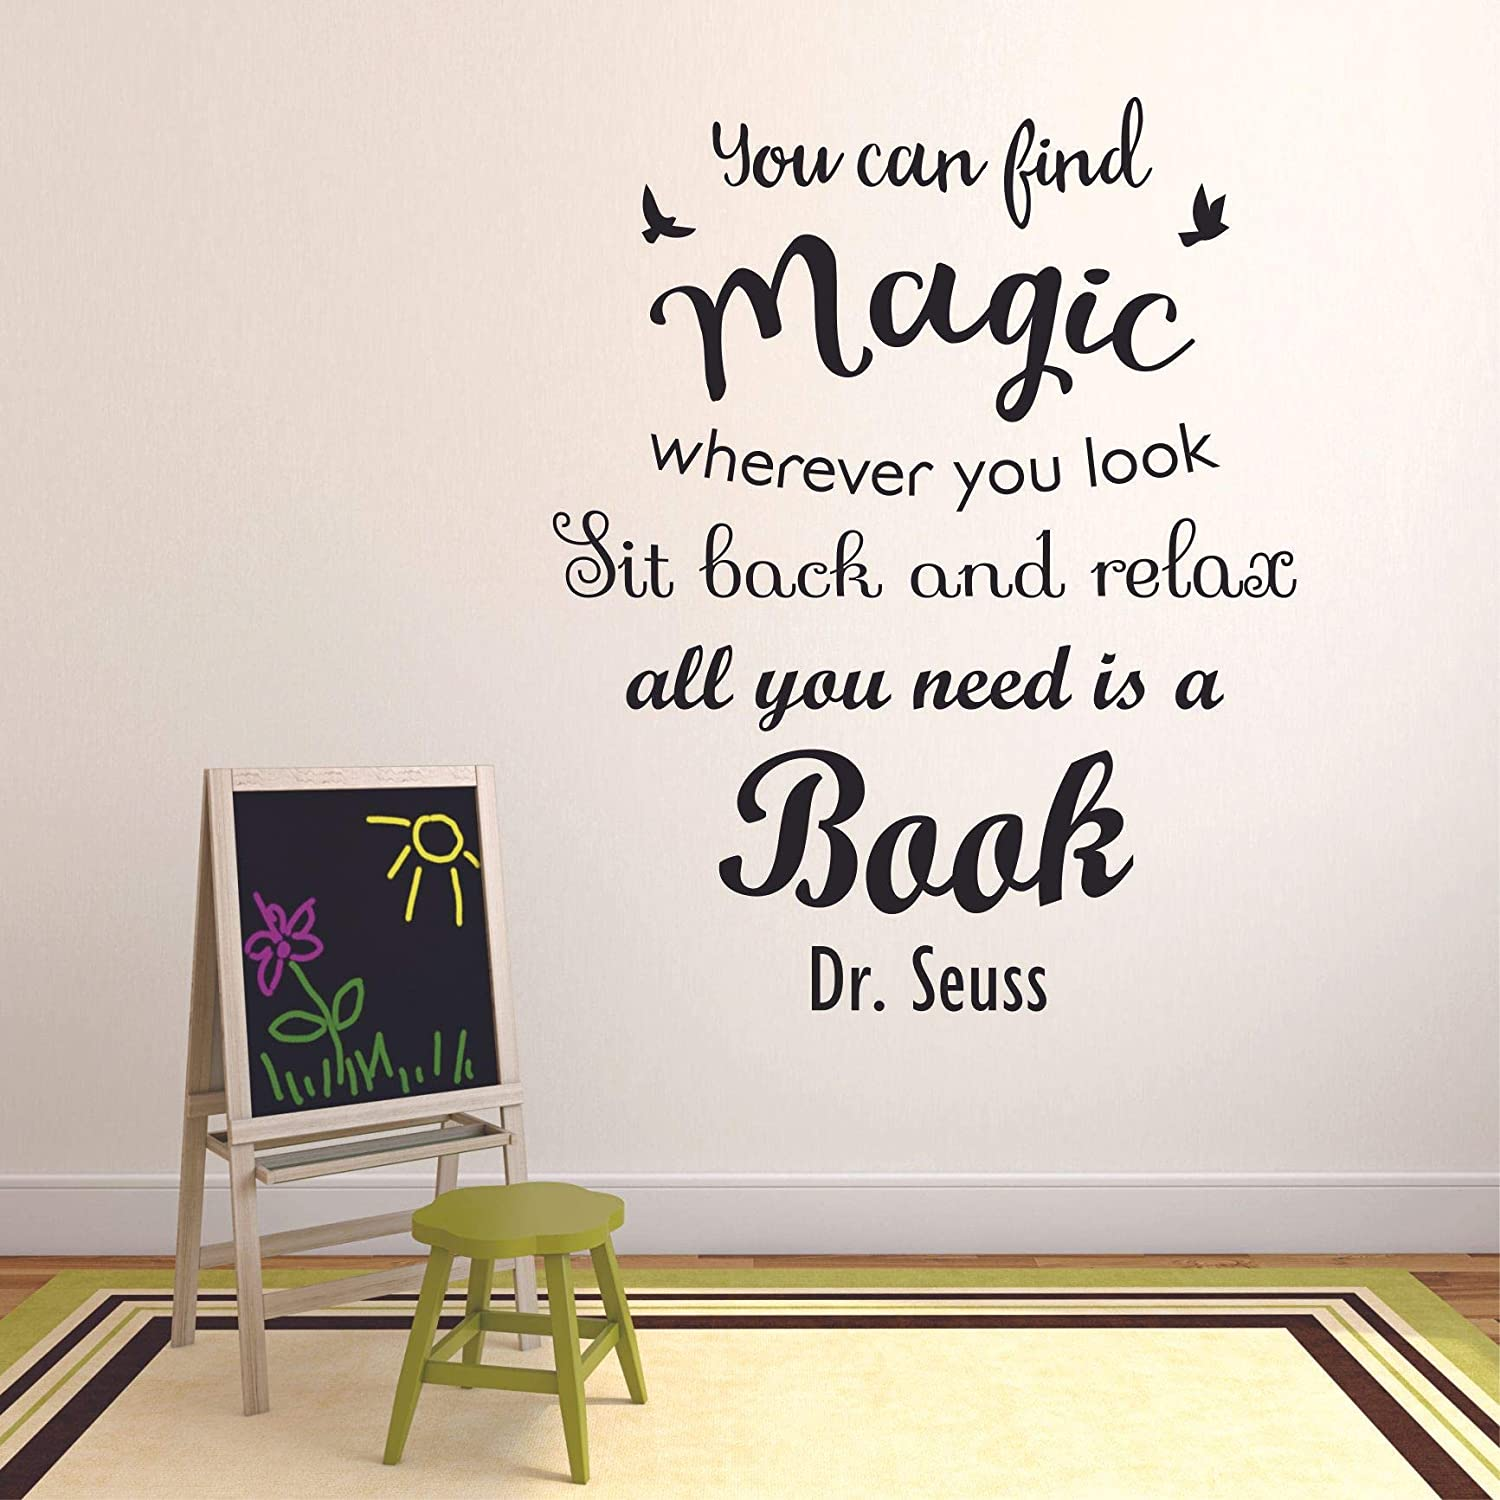 Book Reading Dr. Seuss Motivation Quotes Wall Sticker Vinyl Decal for Girls Boys Kids Library Bedroom Nursery Daycare Kindergarten Story Home Decor Sticker Wall Art Vinyl Decoration Size (20x18 inch)